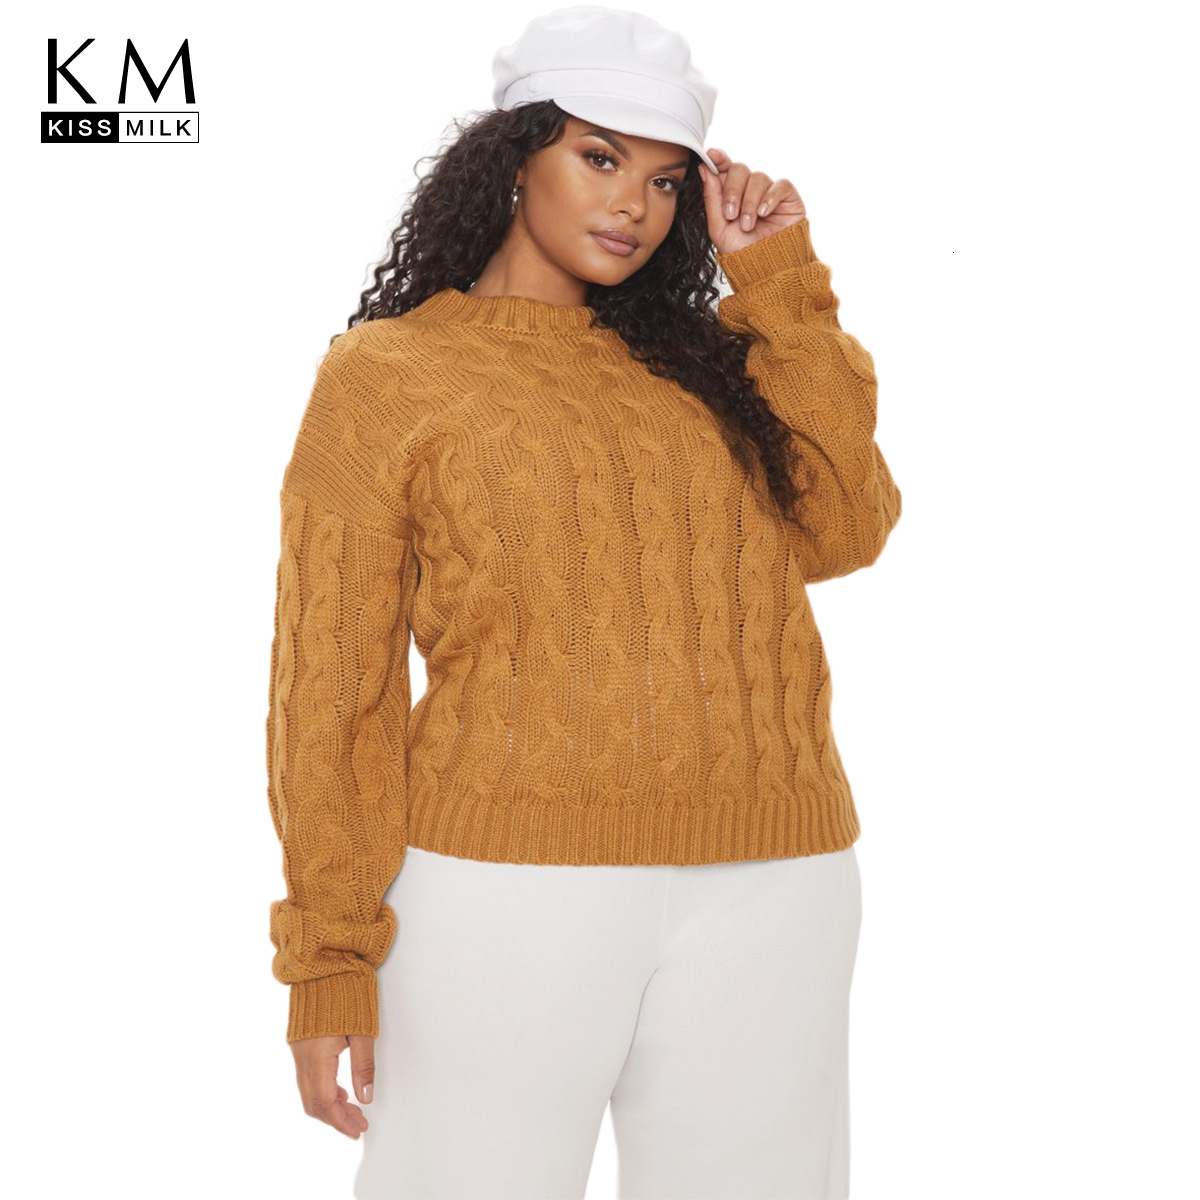 Kissmilk Plus Size Woman Clothes Vintage Wind Twisted Half-high Collar Drop Shoulder Long Sleeve Sweater